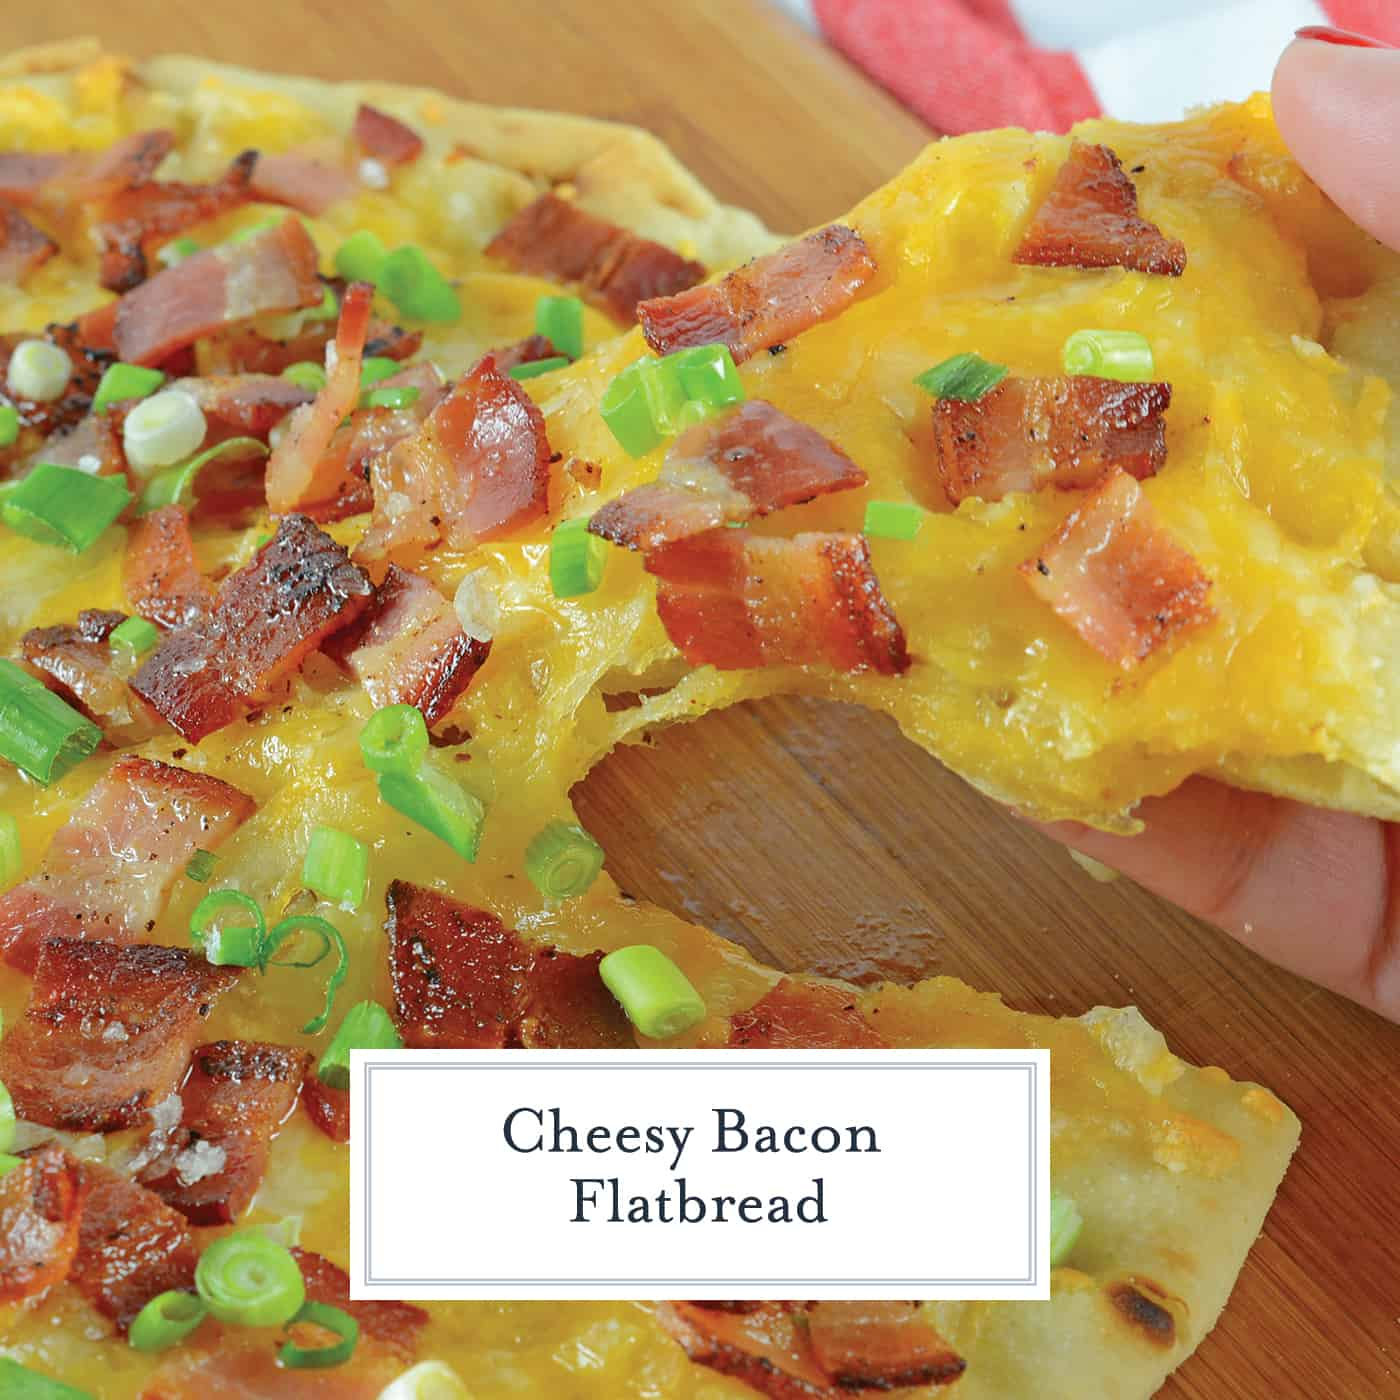 Bacon Cheddar Flatbread Pizza has just the right amount of bacon, cheese and garlic, this is a weeknight dinner that will be requested again and again! #flatbreadpizza www.savoryexperiments.com